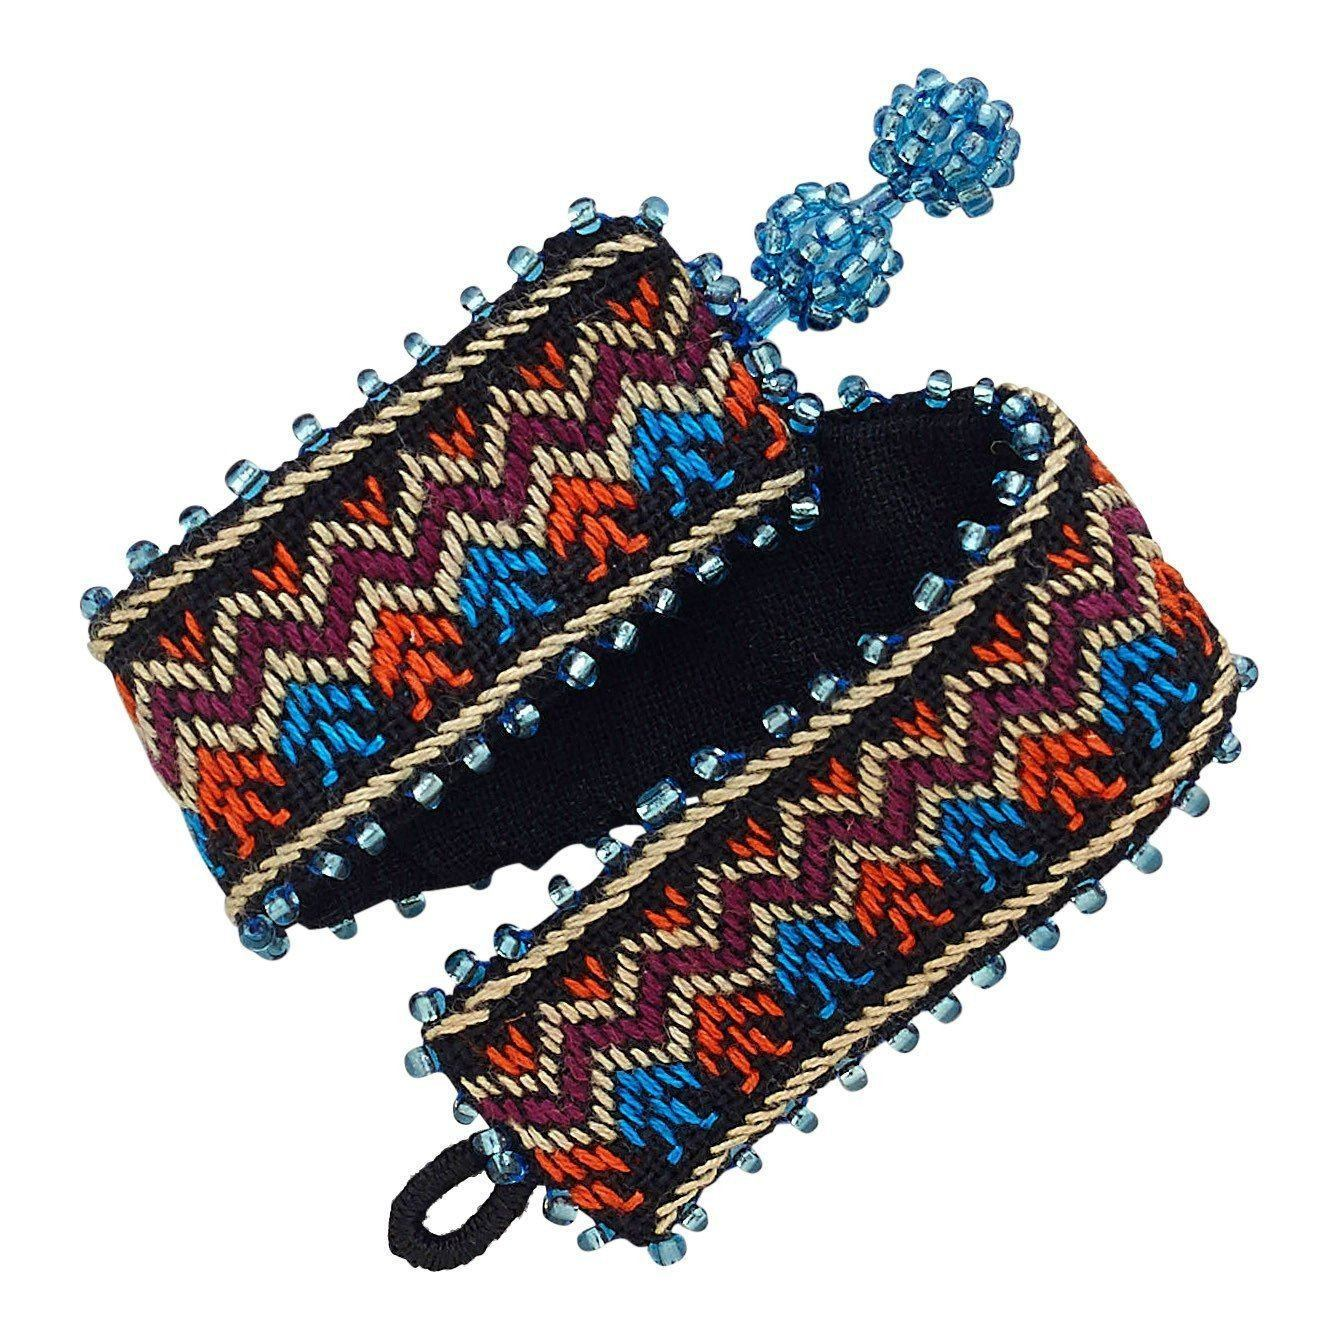 Woven Fabric Bracelet Discounted Ethical Fashion Love Justly